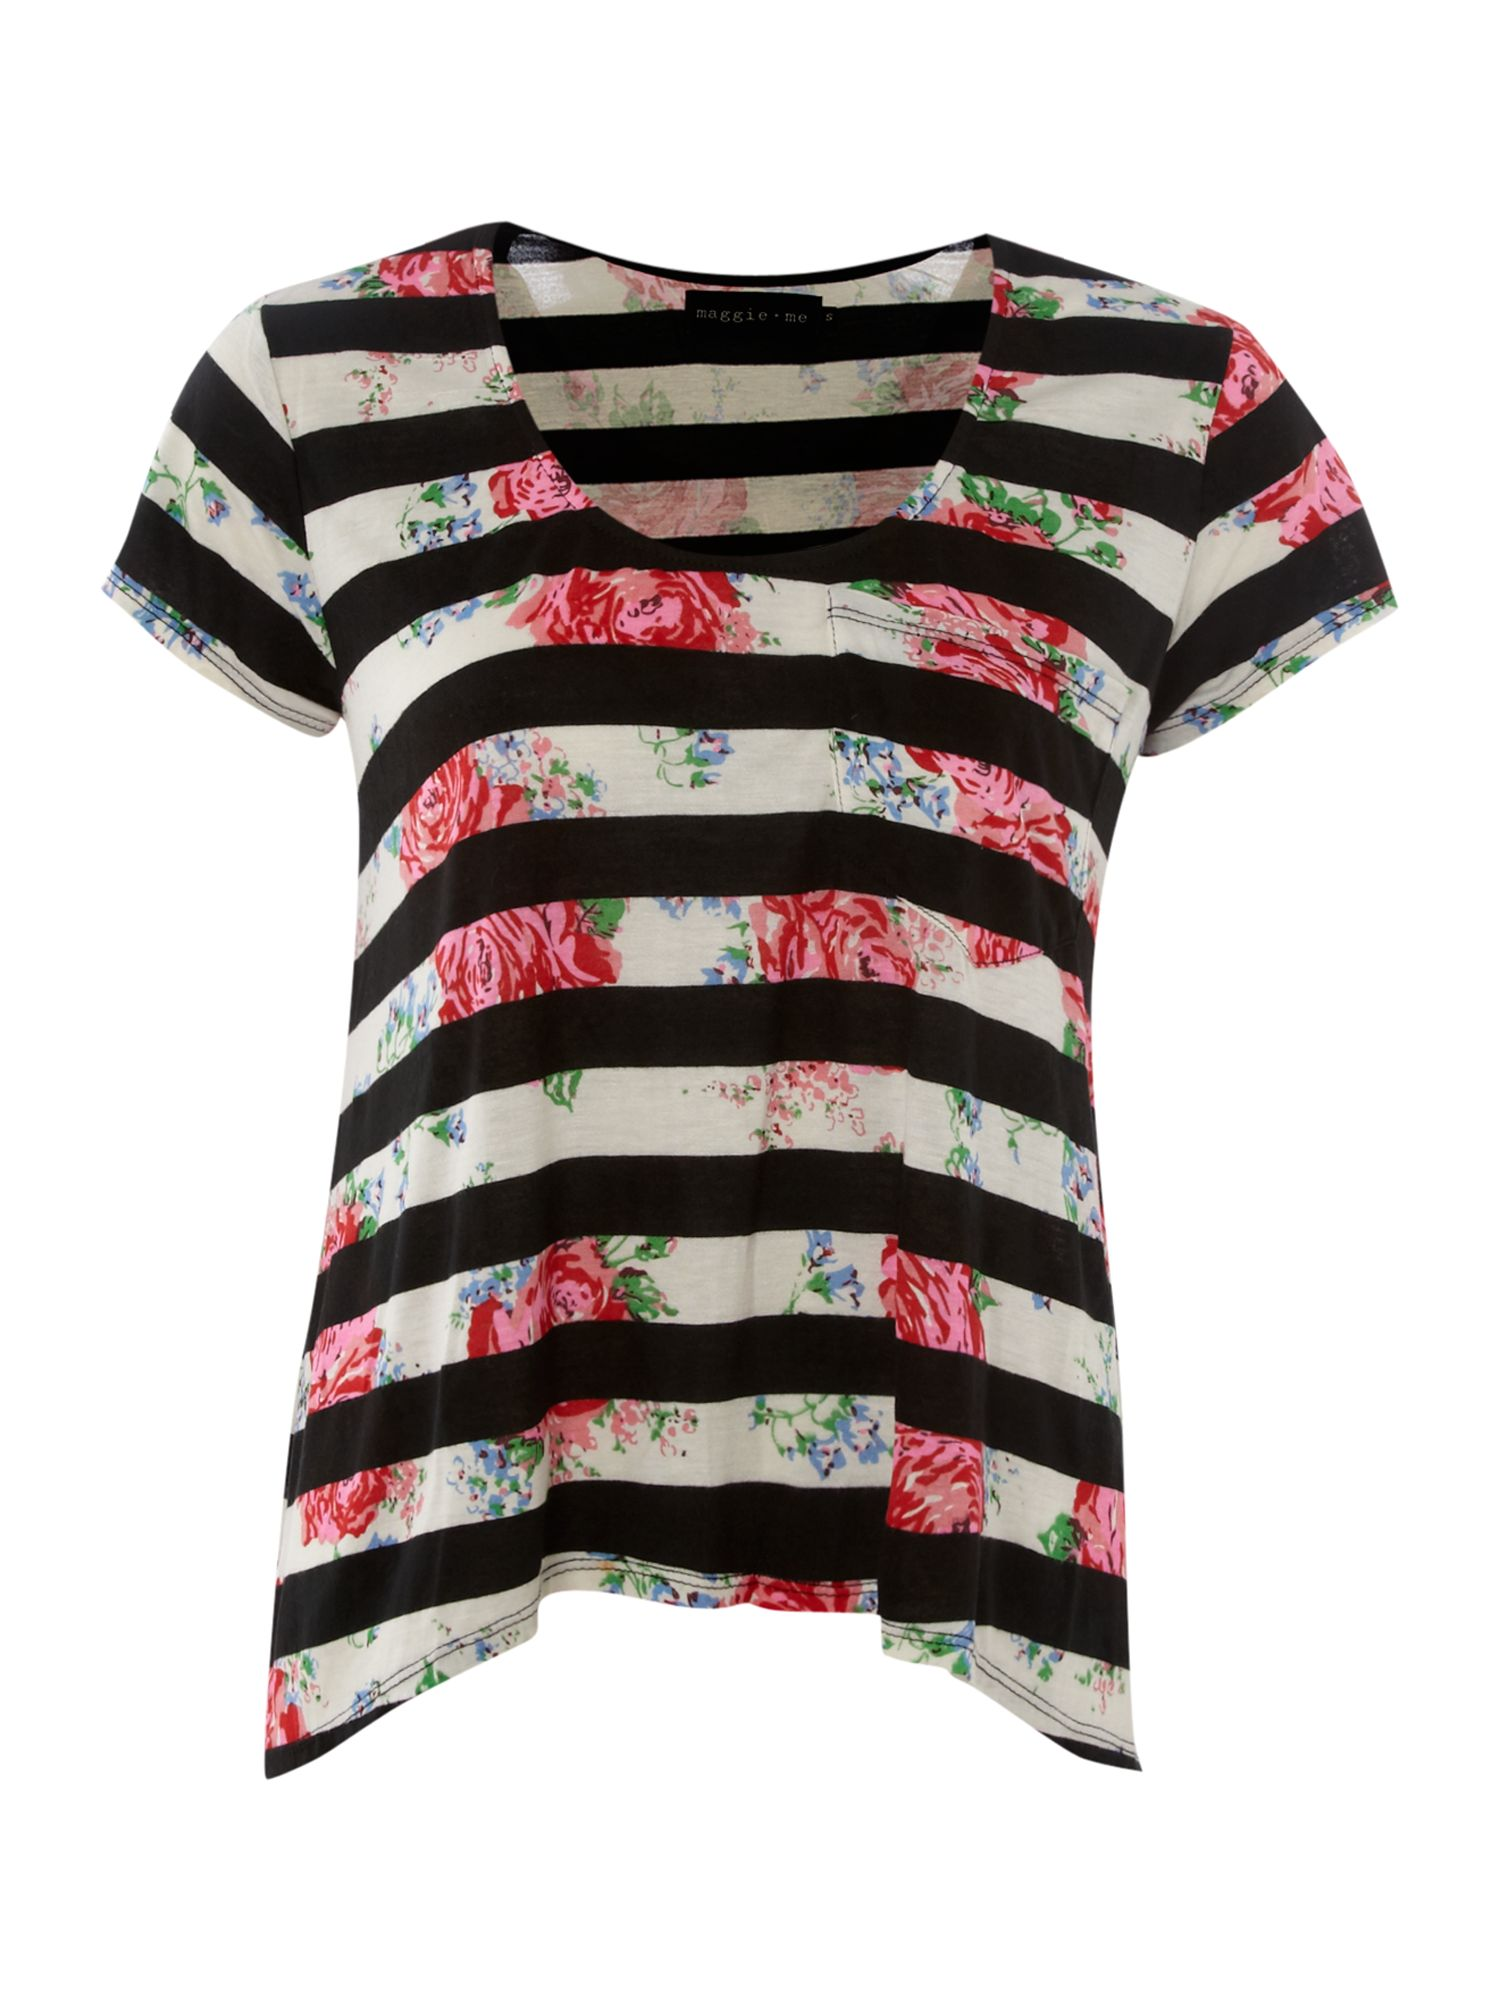 Maggie and Me Stripe t-shirt, Black 148414553 product image